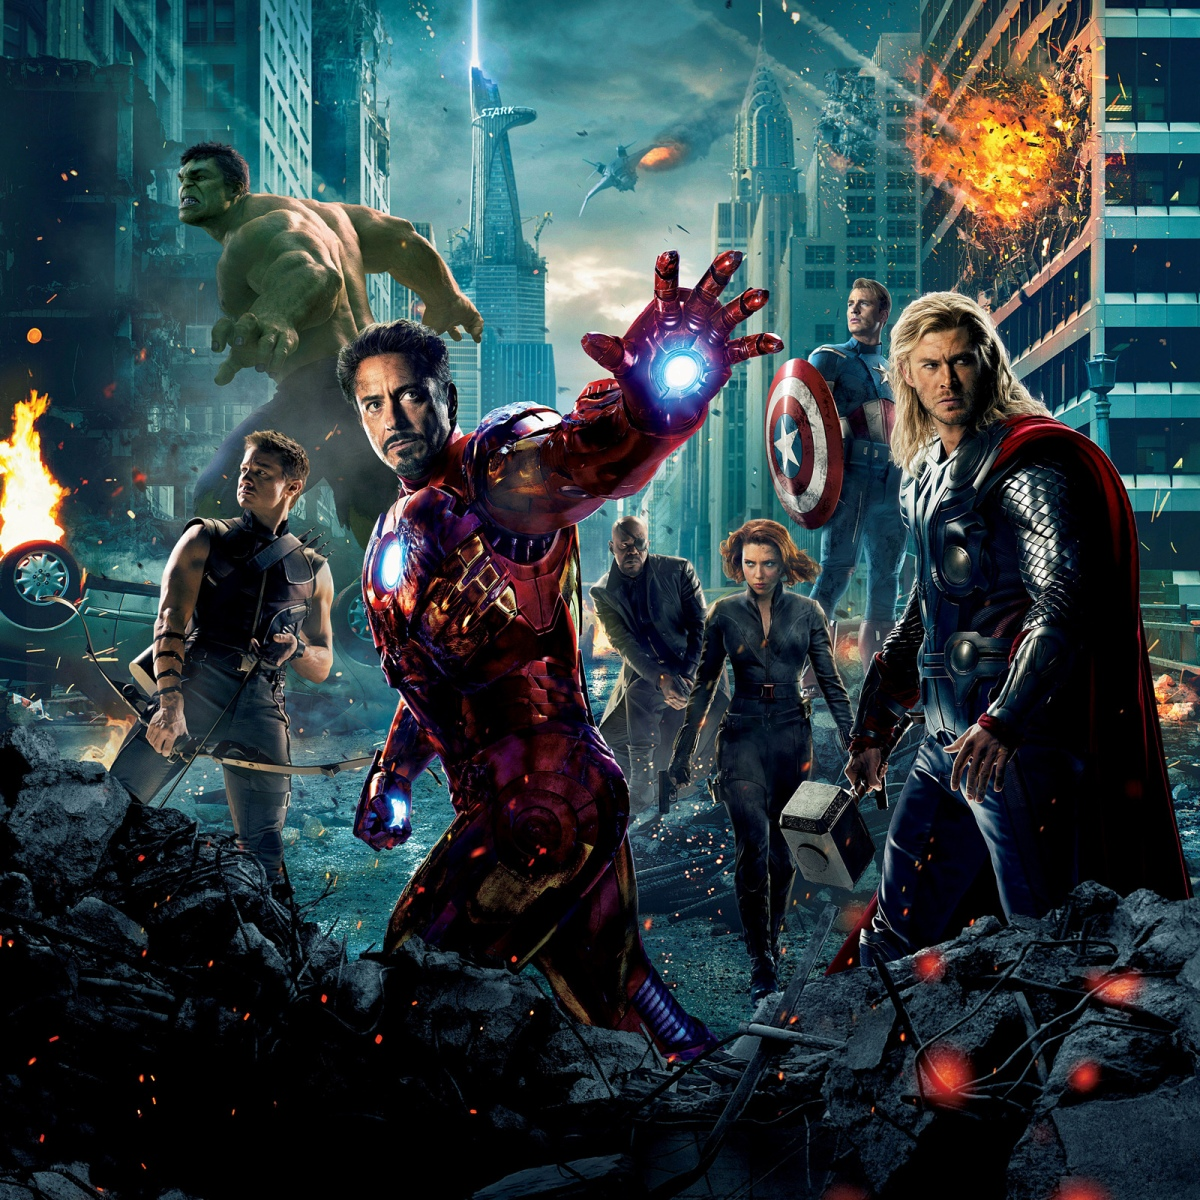 Marvel Cinematic Universe: A White Man's World